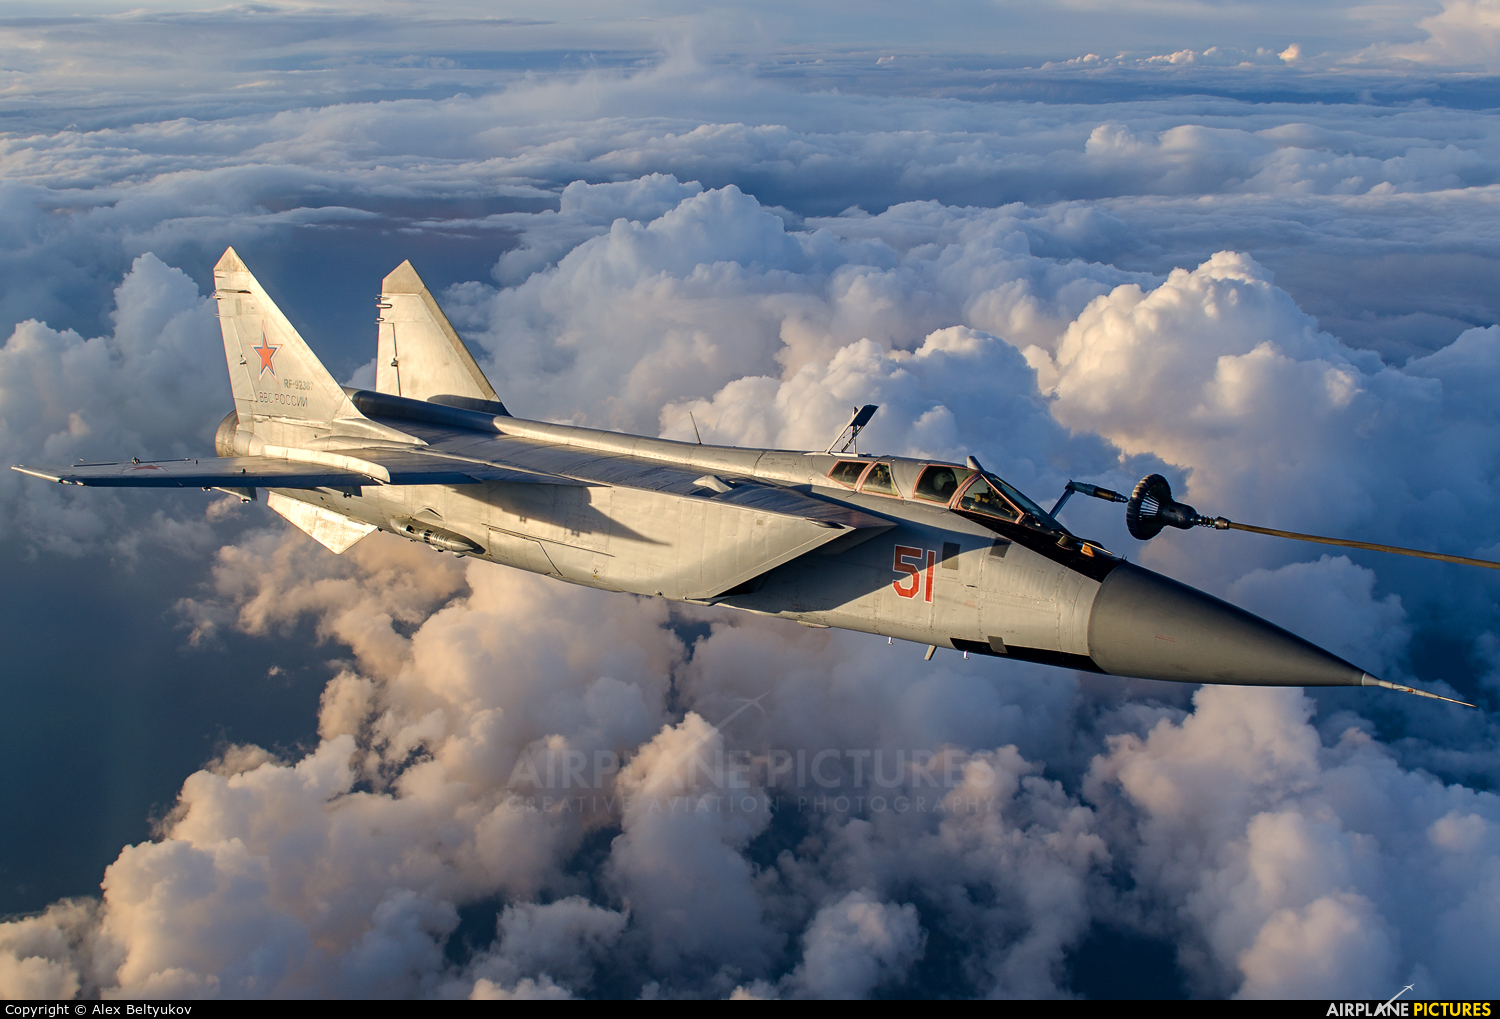 Russia - Air Force 51 aircraft at In Flight - Russia